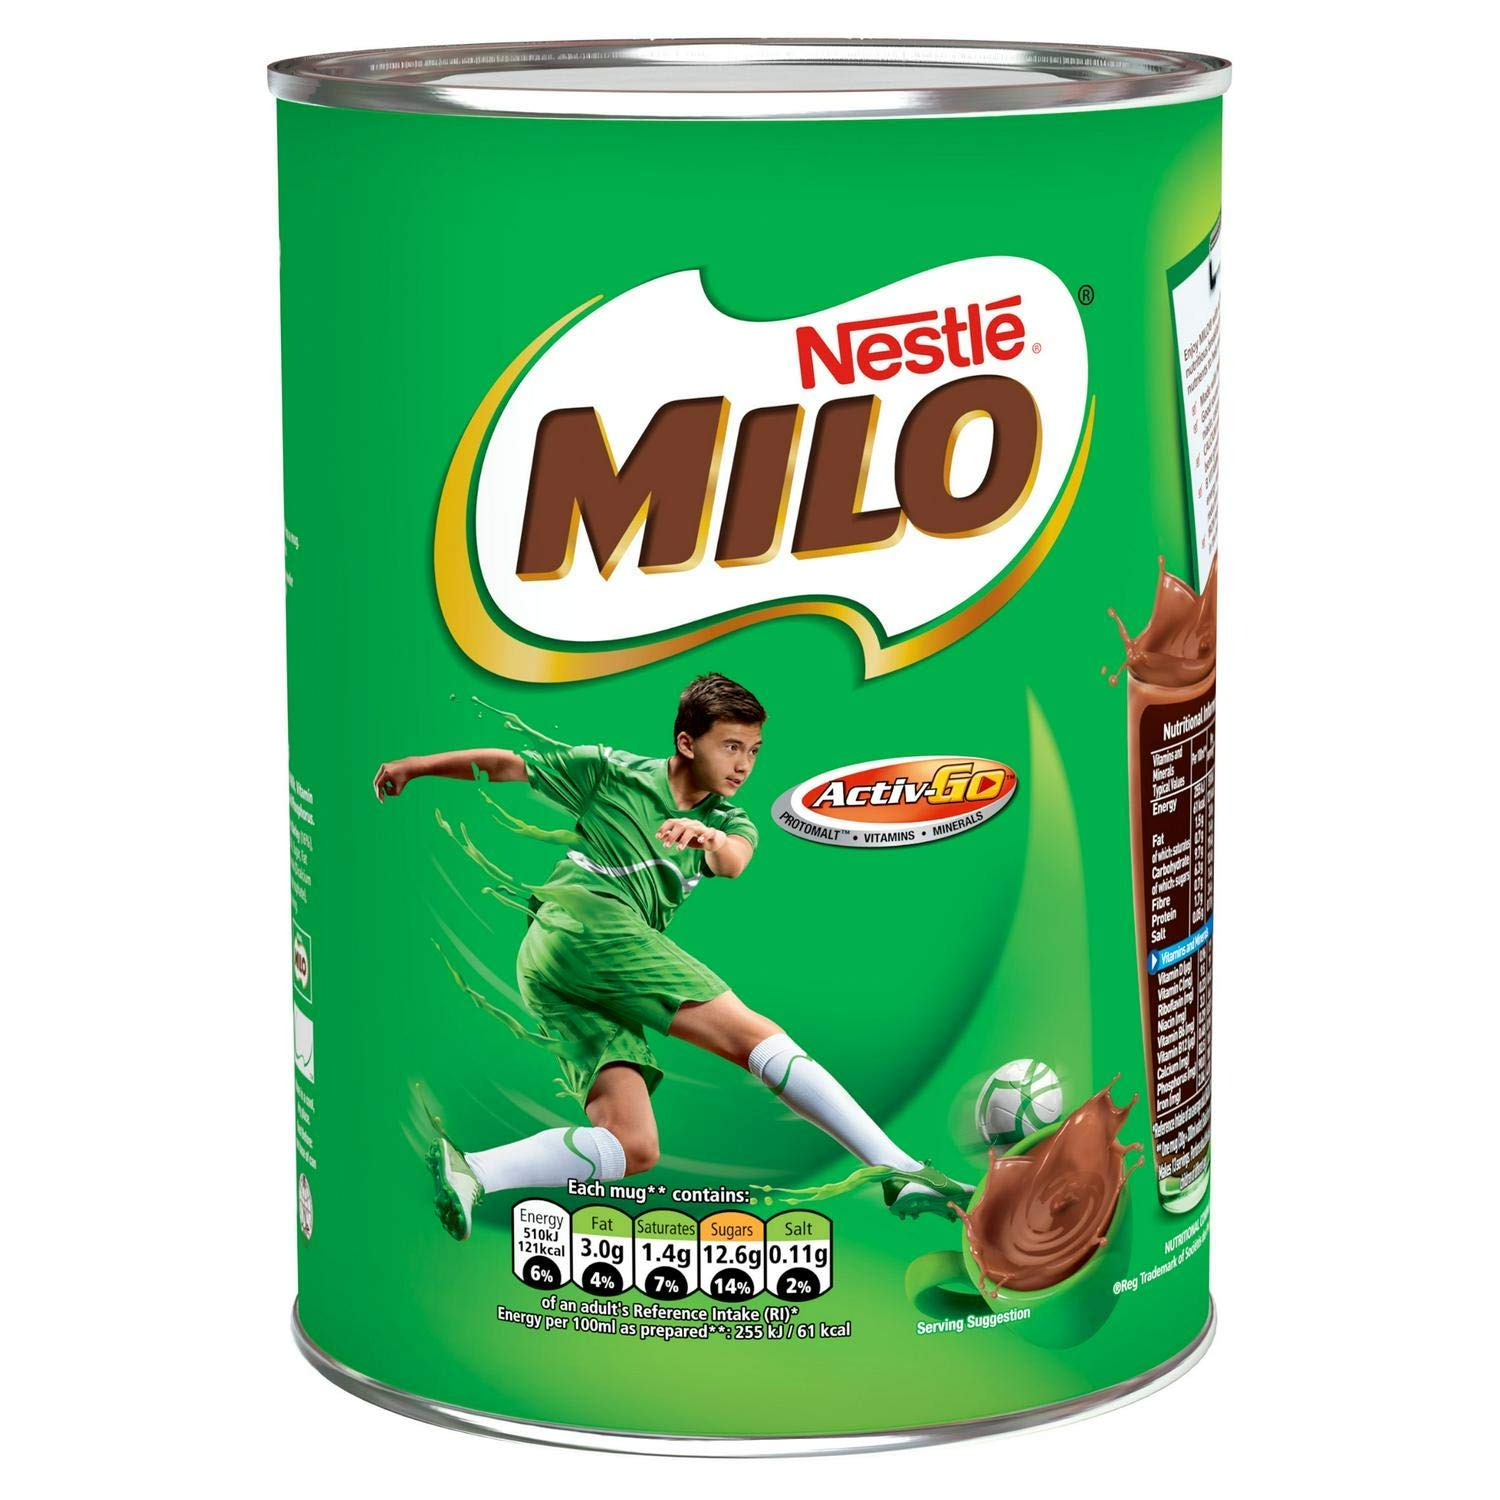 Original Nestle Milo Activ-Go Drinking Chocolate Imported From The UK, Nestle Milo Chocolate Malt Beverage, The Best Of Original Milo Drinking Sports Chocolate Drink